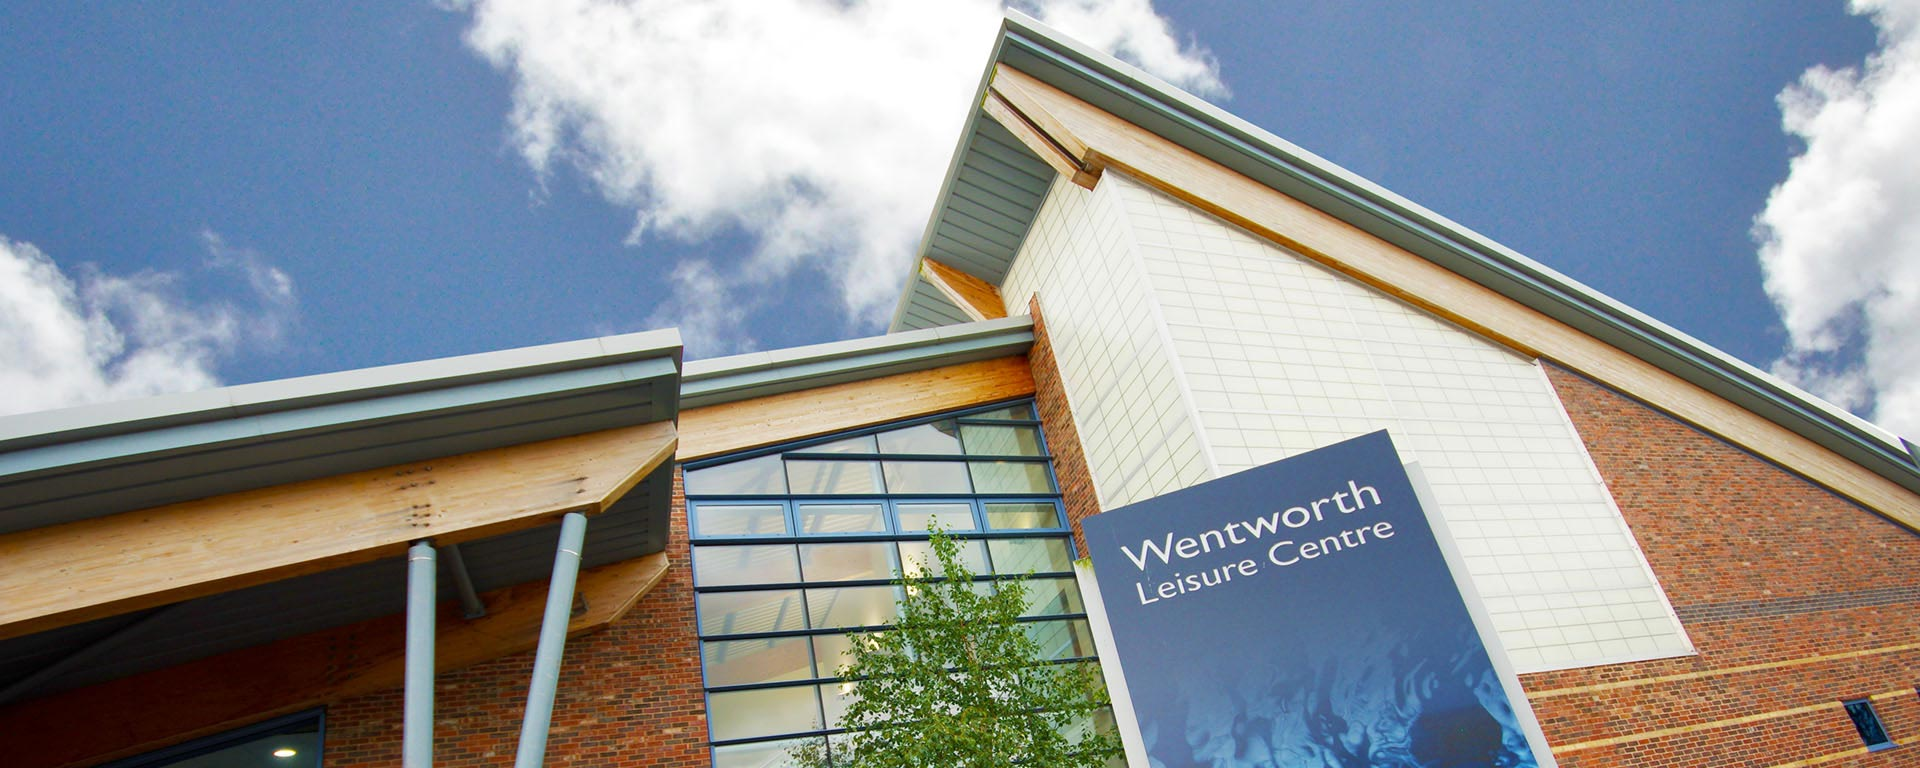 Wentworth Leisure Centre, Hexham